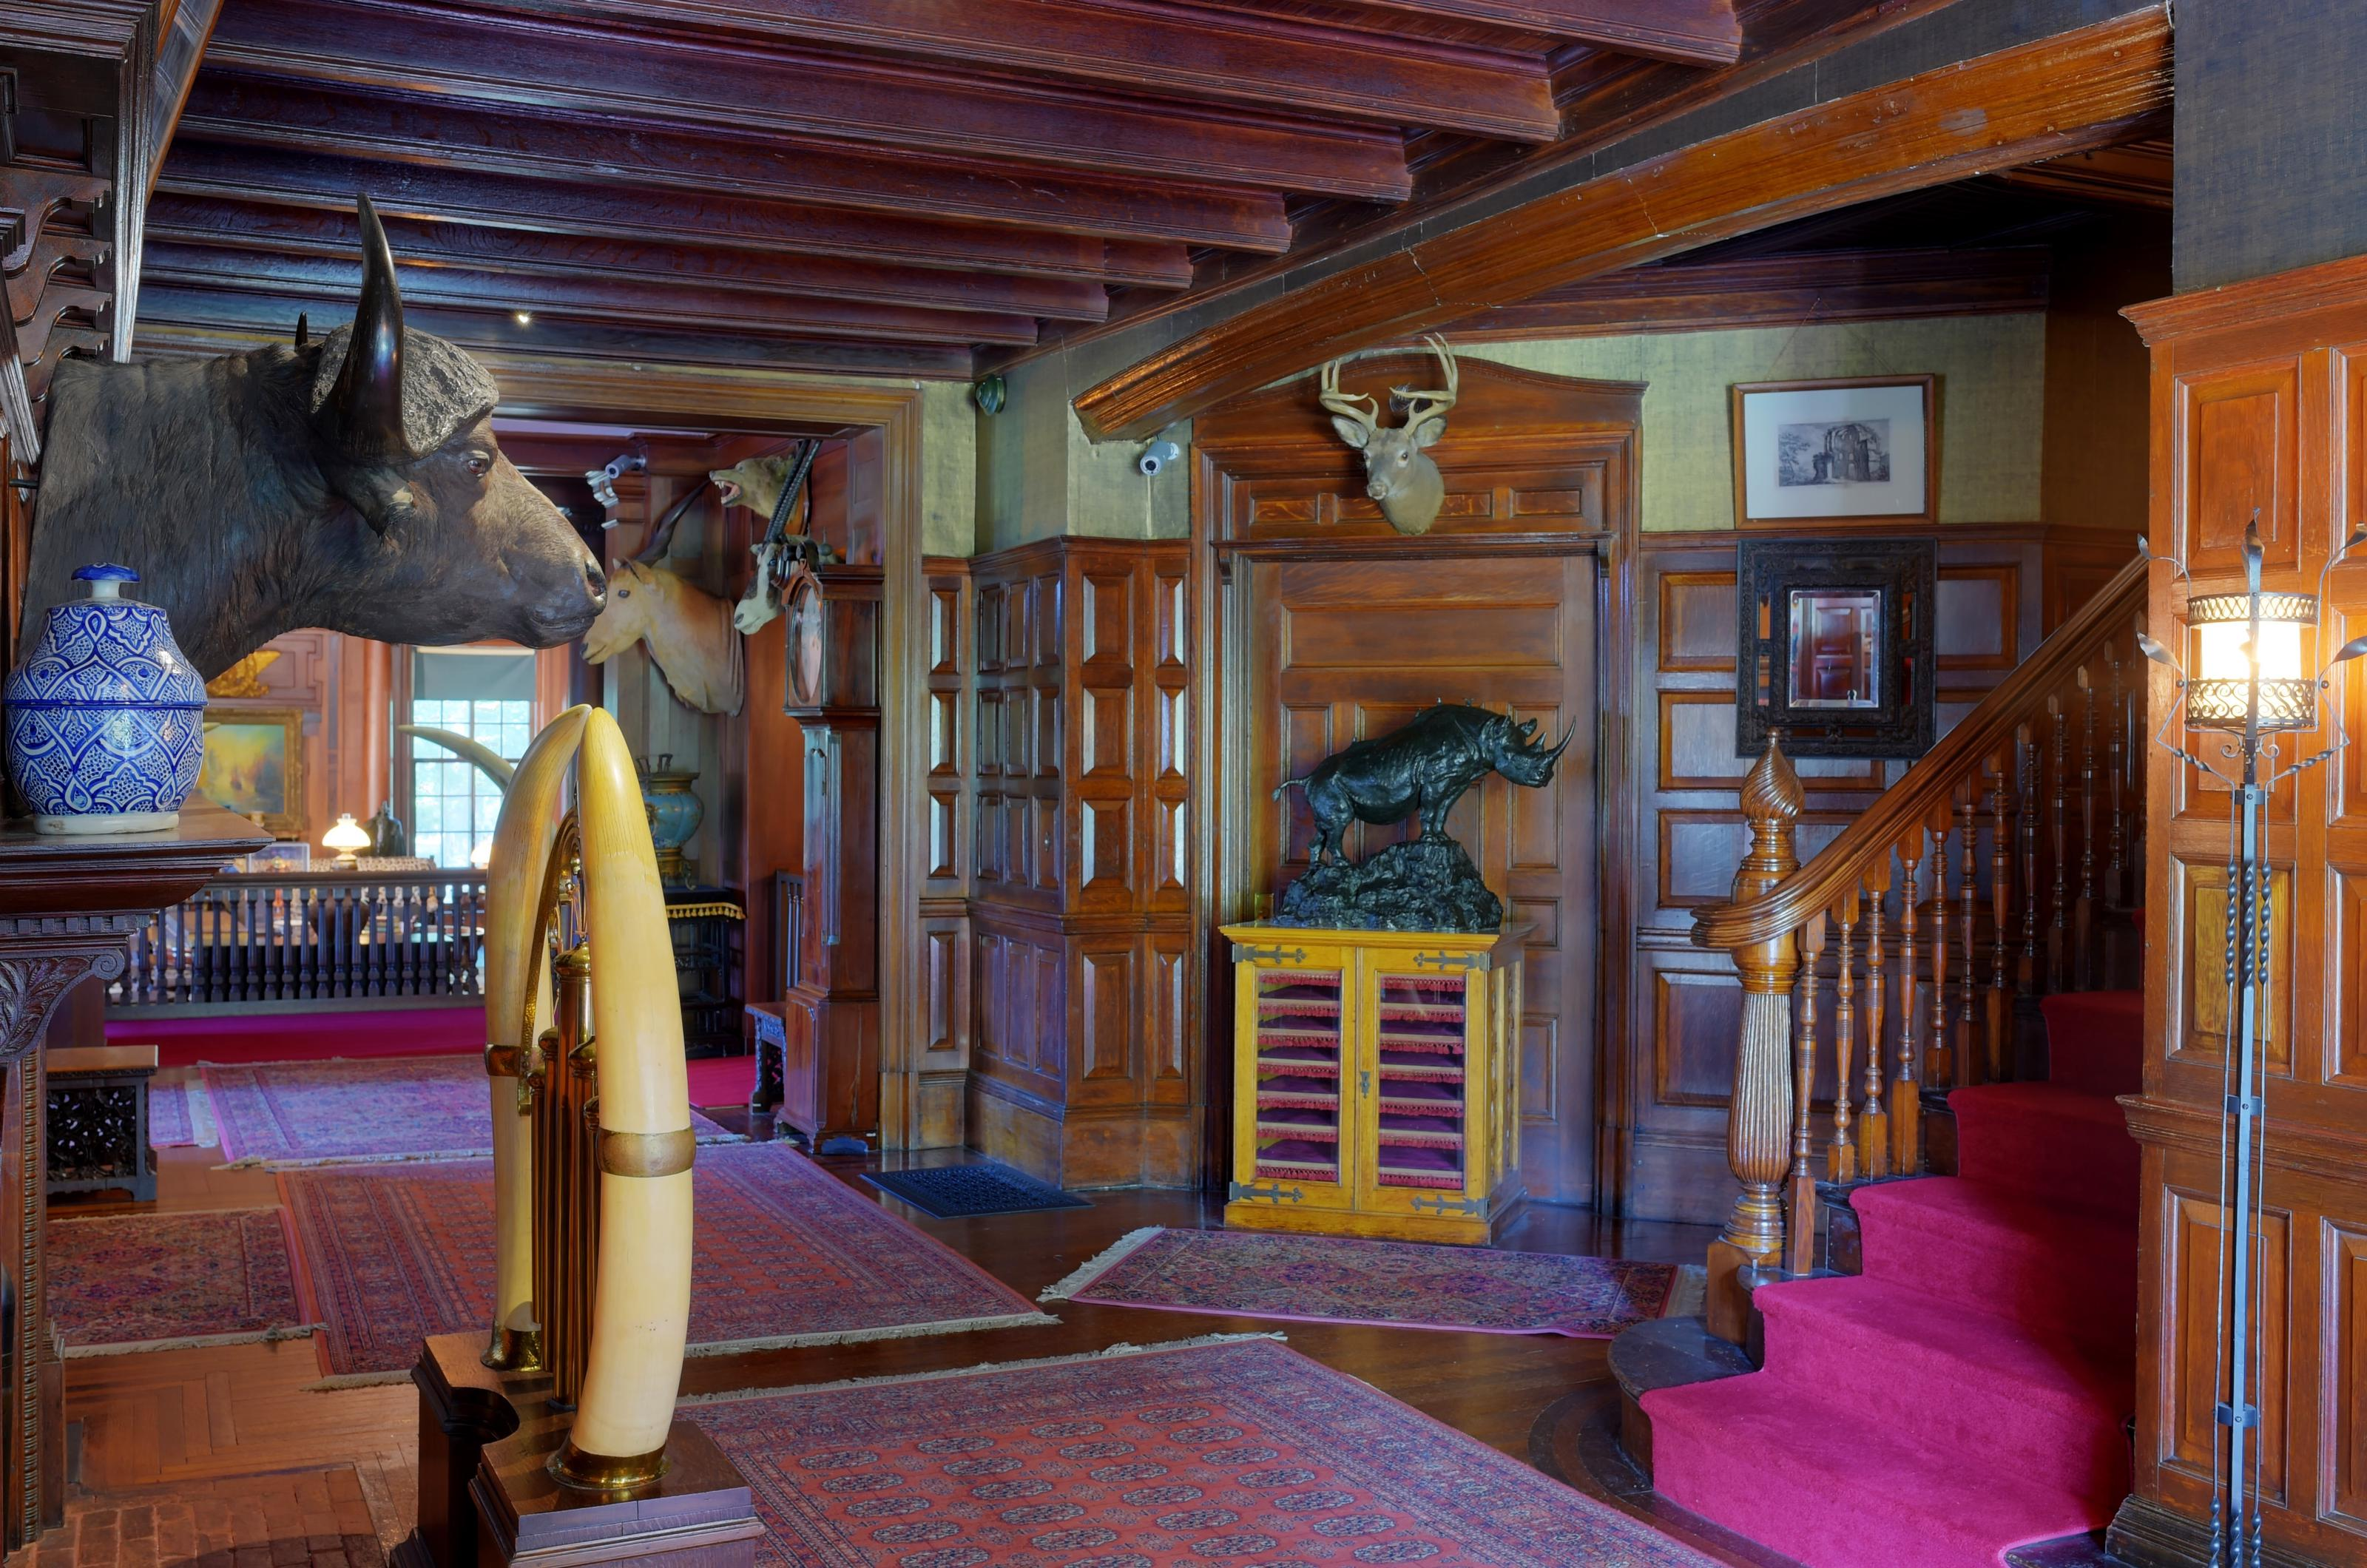 A hall wall with hunting trophies, oak paneled walls, and a staircase.The front hall of Sagamore Hill.